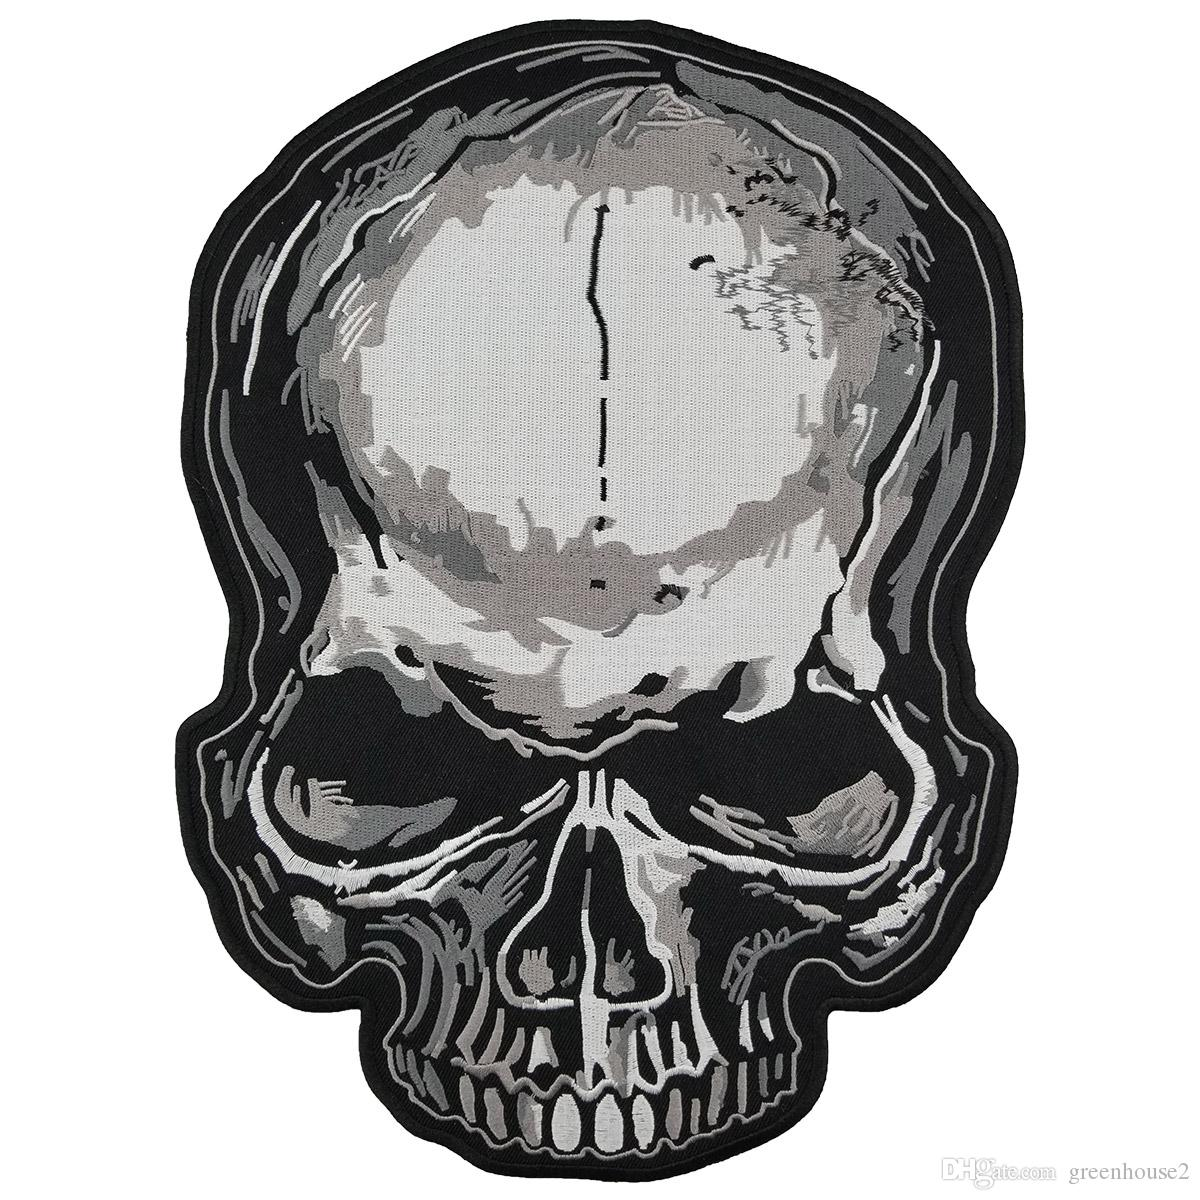 Skull Embroidered Patch Iron On Back of Jacket Patch Black Twill Fabric Free Shipping Custom DIY